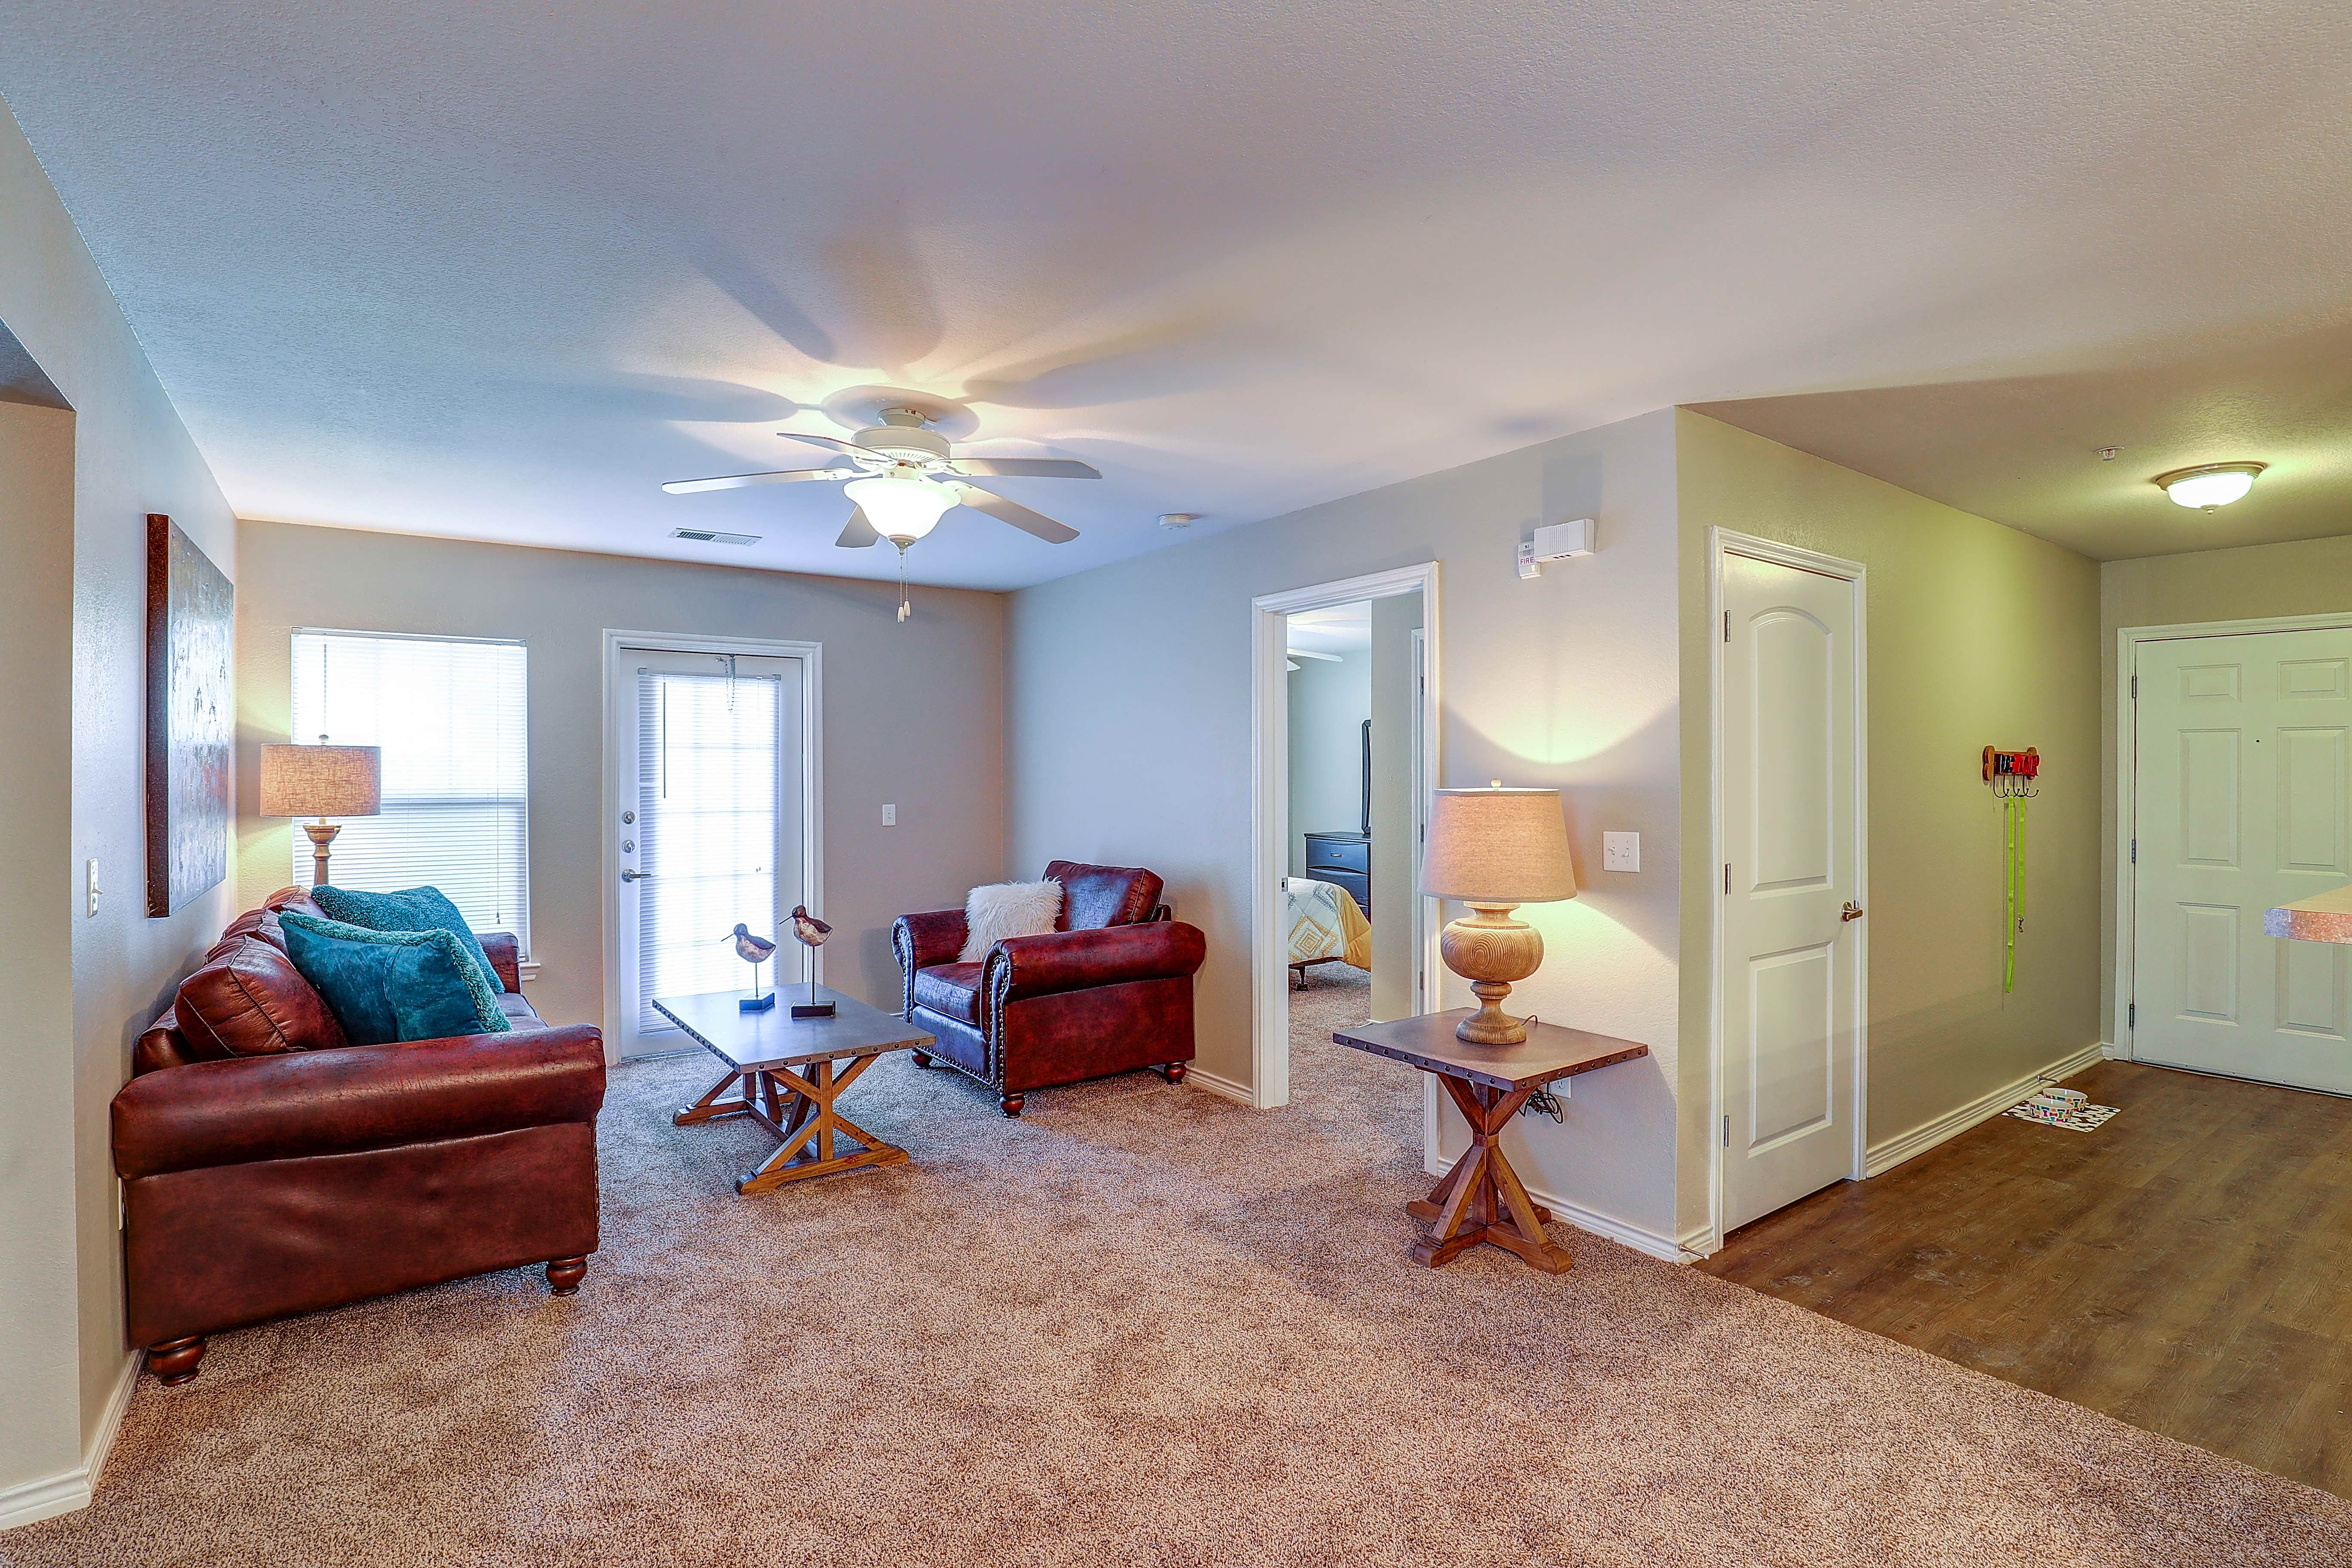 Apartments Near WSU Inwood Crossing for Wichita State University Students in Wichita, KS